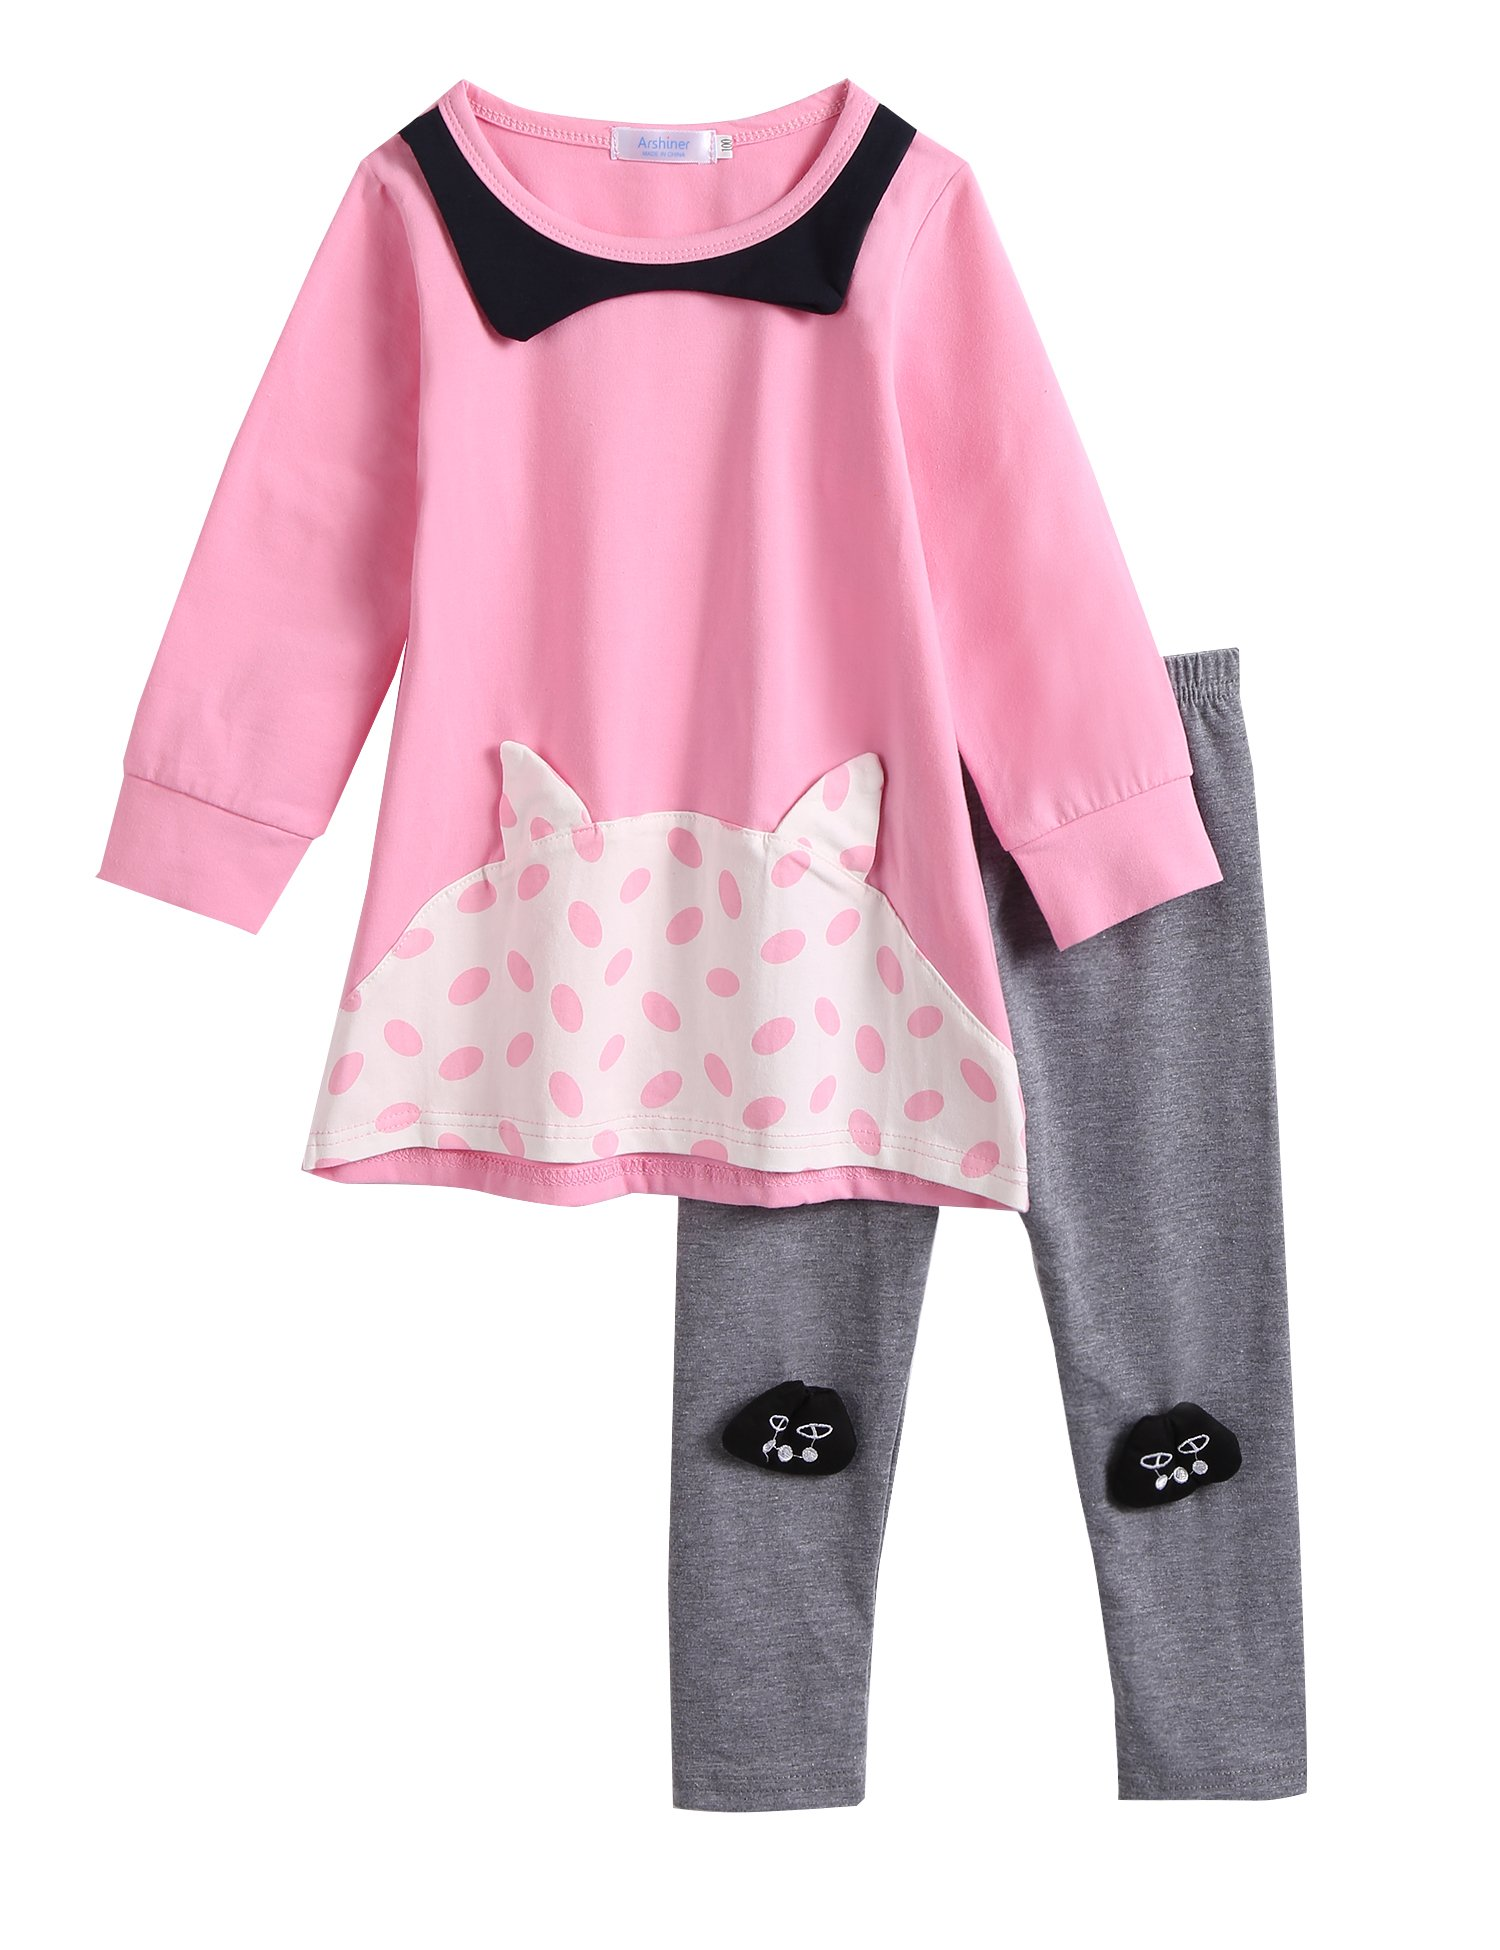 Arshiner Little Girls Toddler Kids Soft Comfy Sleepwear Pajamas Sets Cotton Pjs 2PCS Tops and Pants